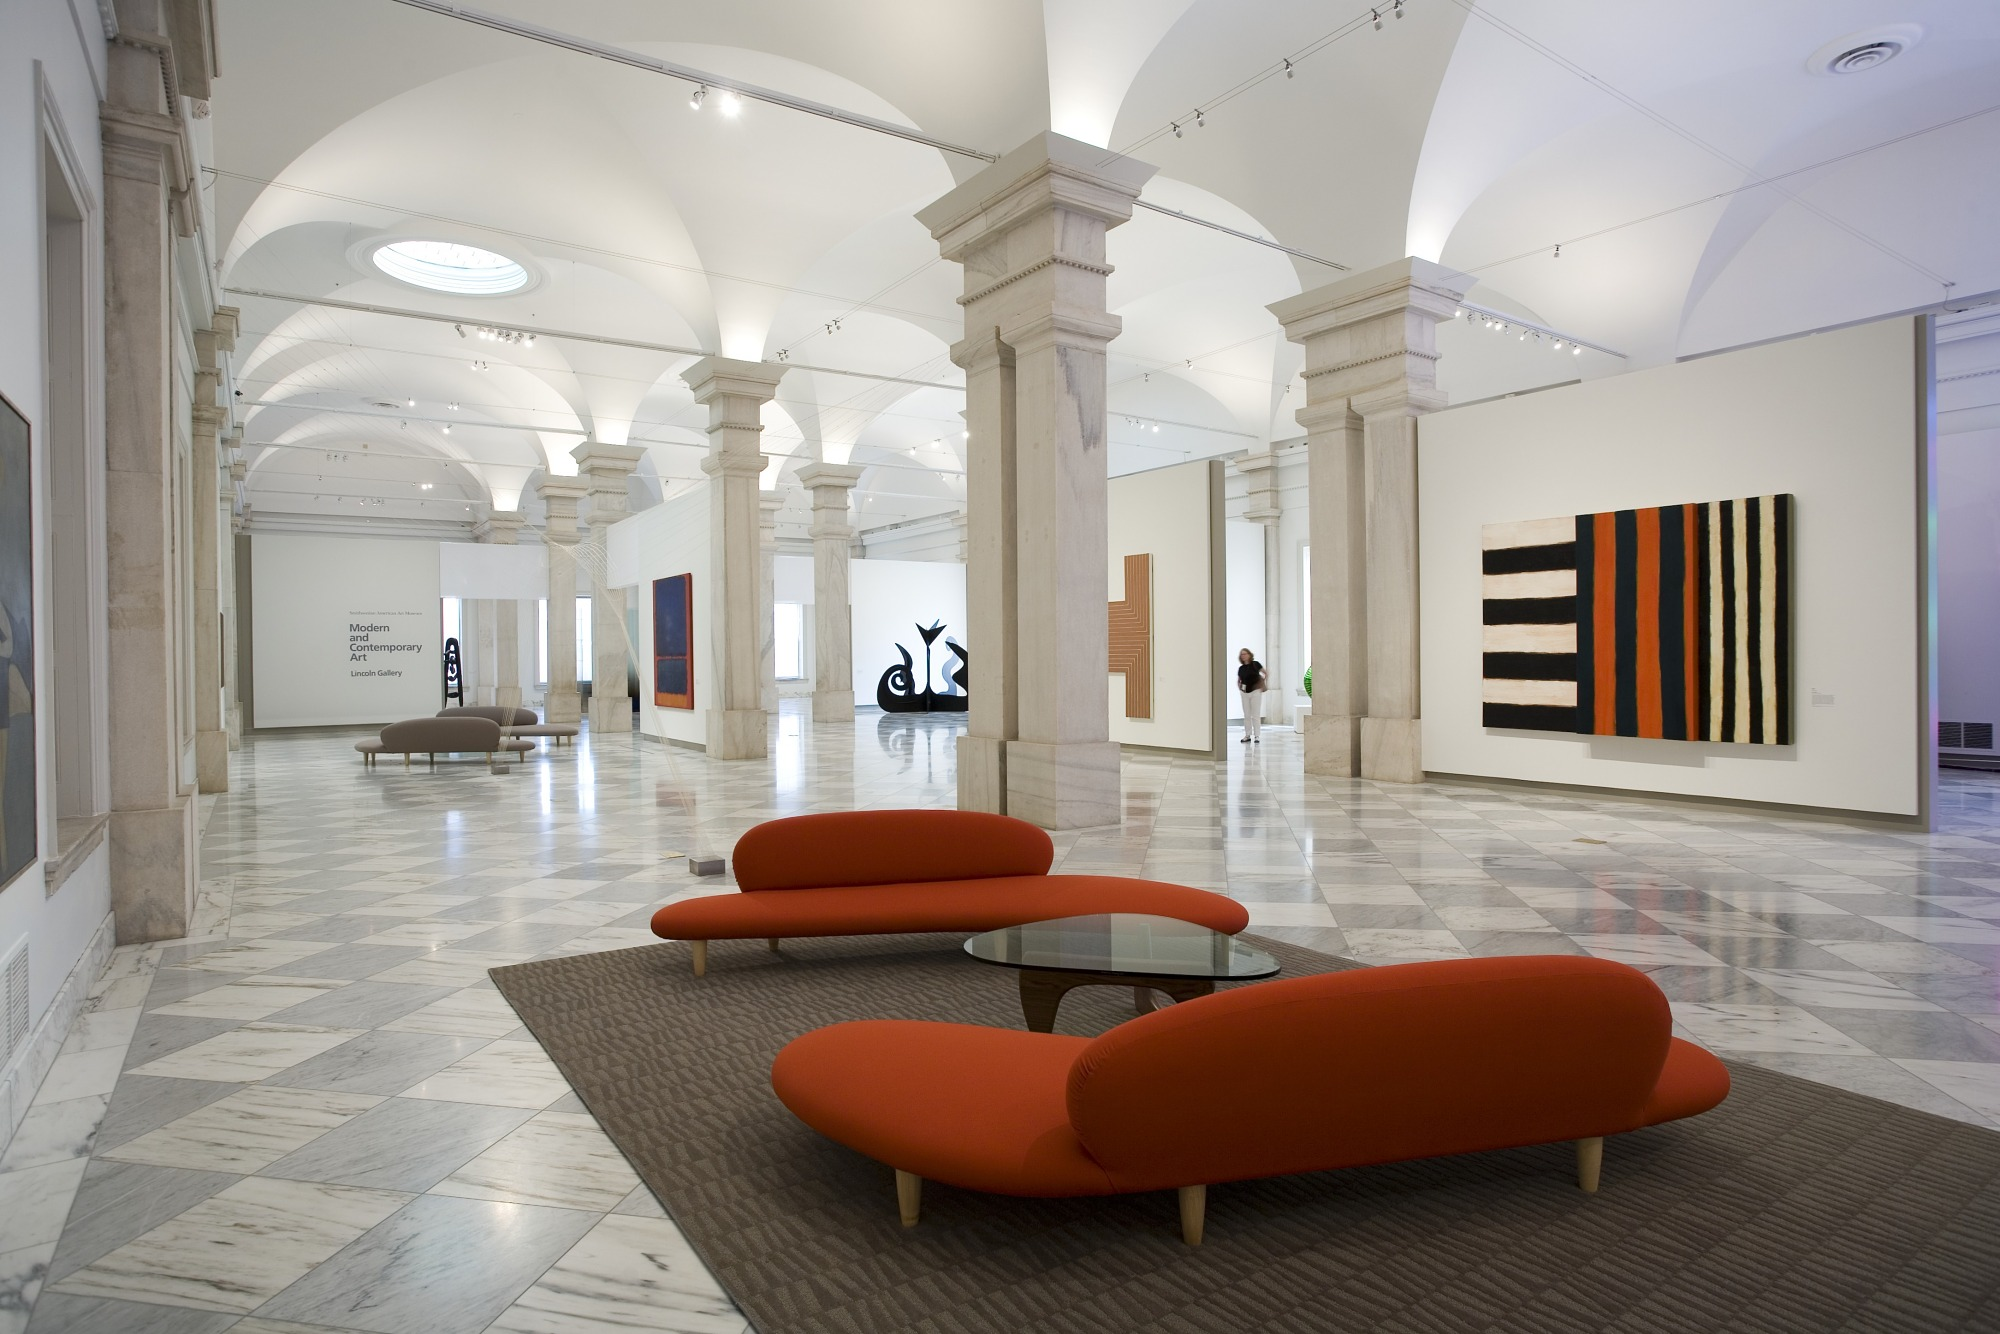 Reynolds Center for American Art and Portraiture